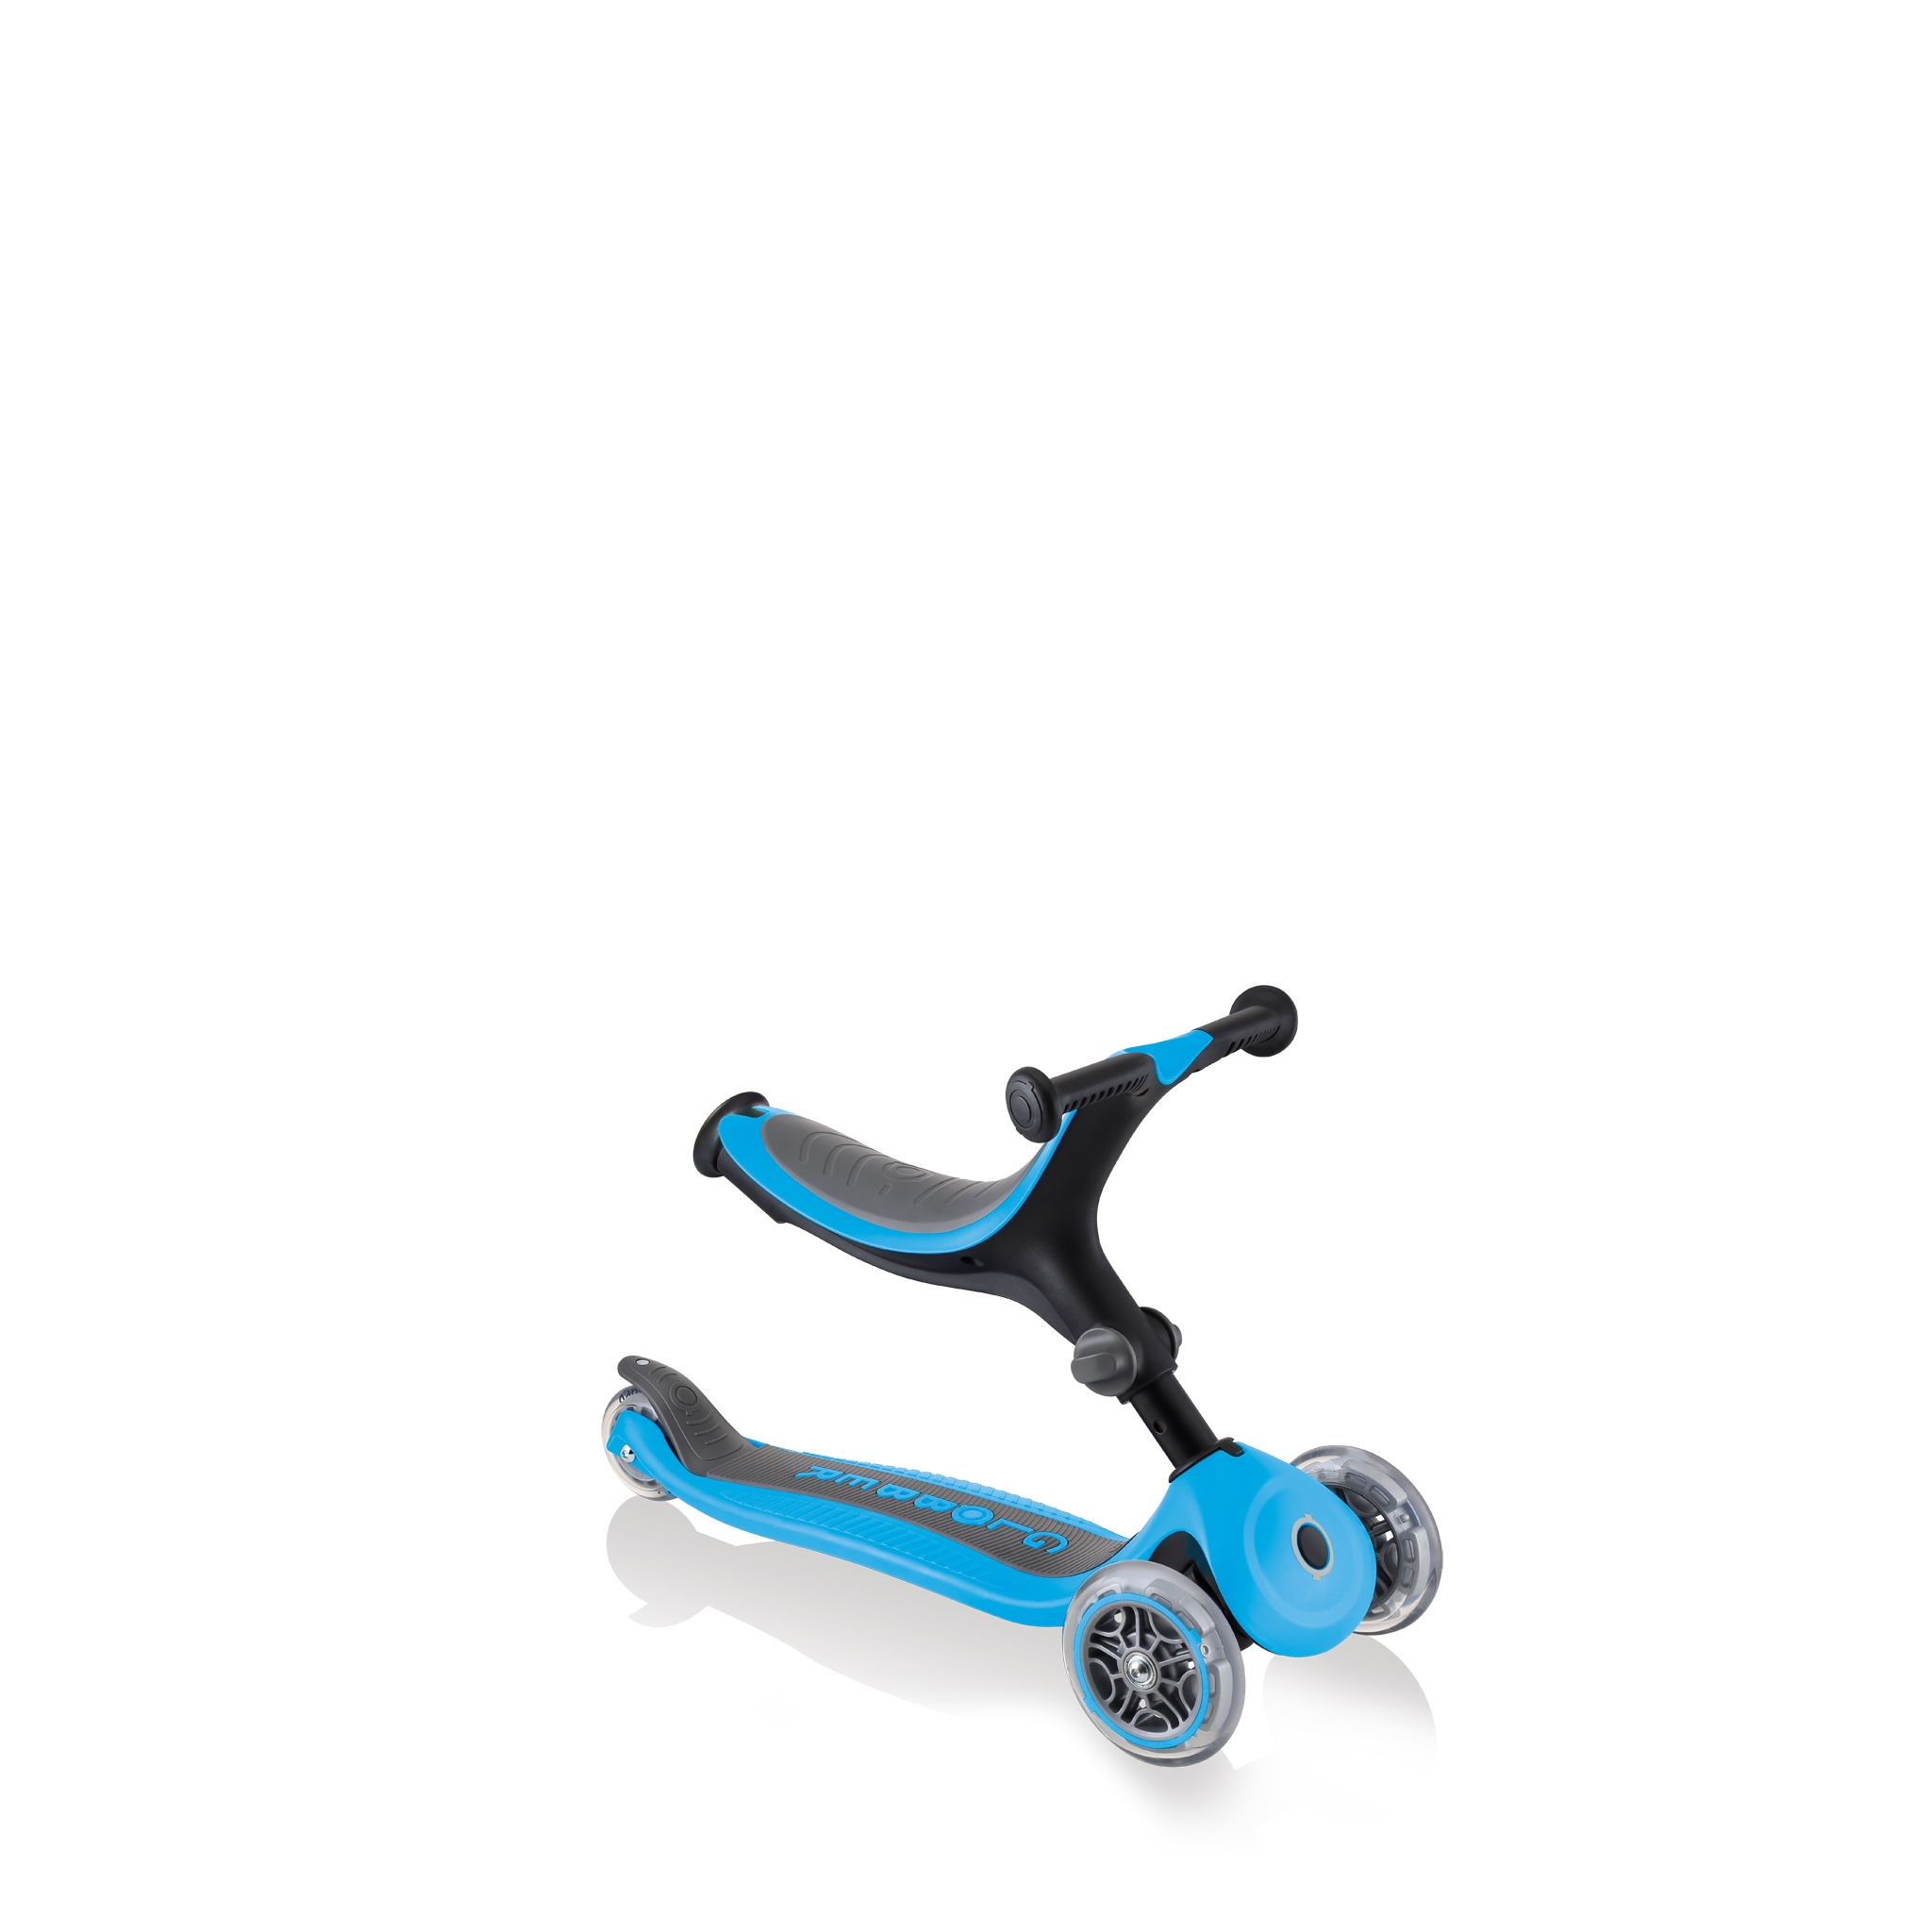 Globber-GO-UP-FOLDABLE-PLUS-3-in-1-scooter-for-toddlers-walking-bike-mode 1